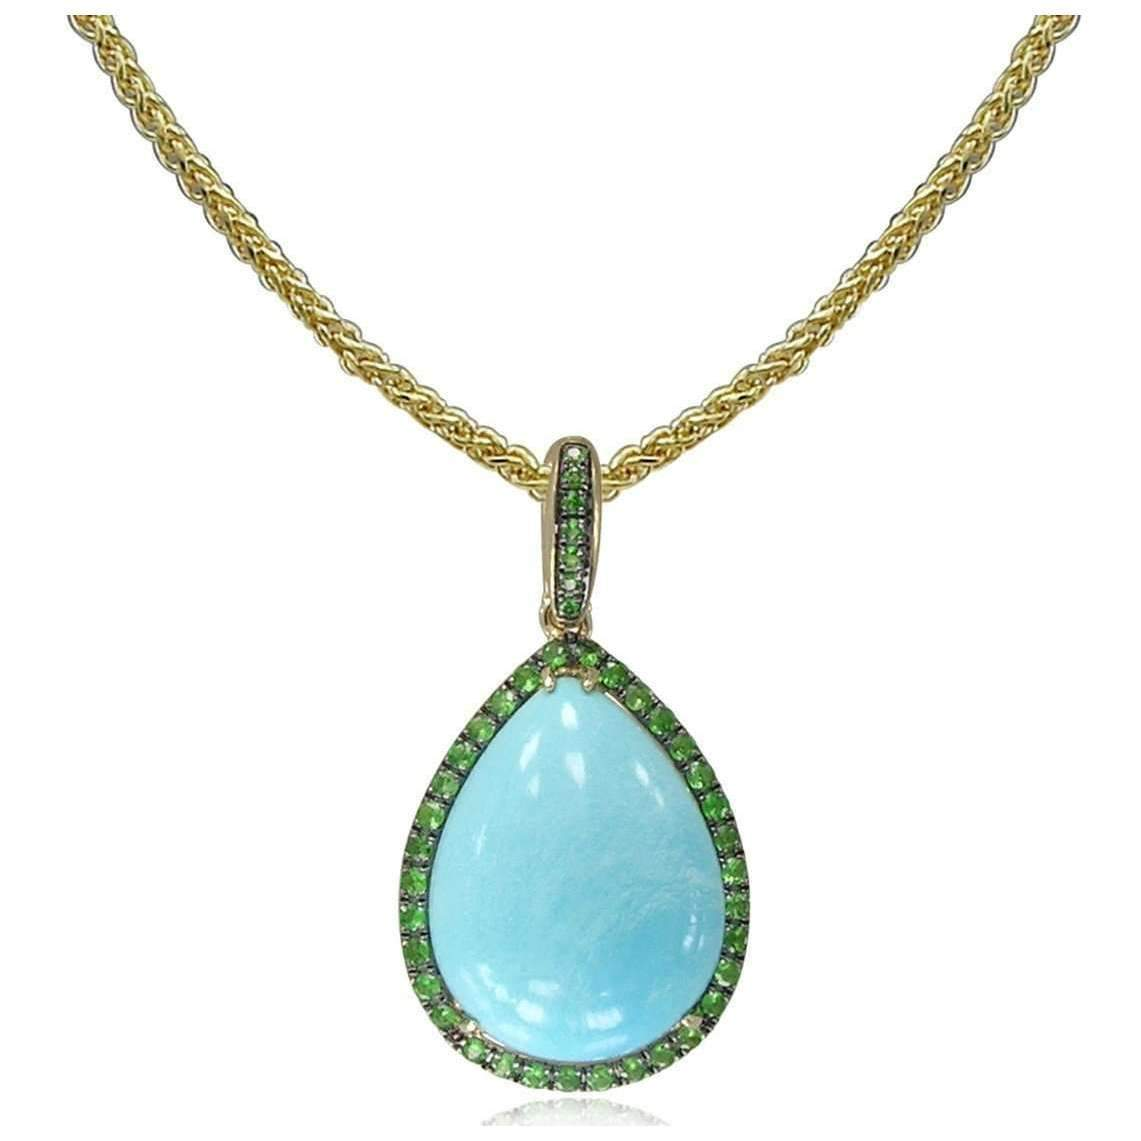 14kt Gold Tsavorite And Turquoise Pendant With Chain